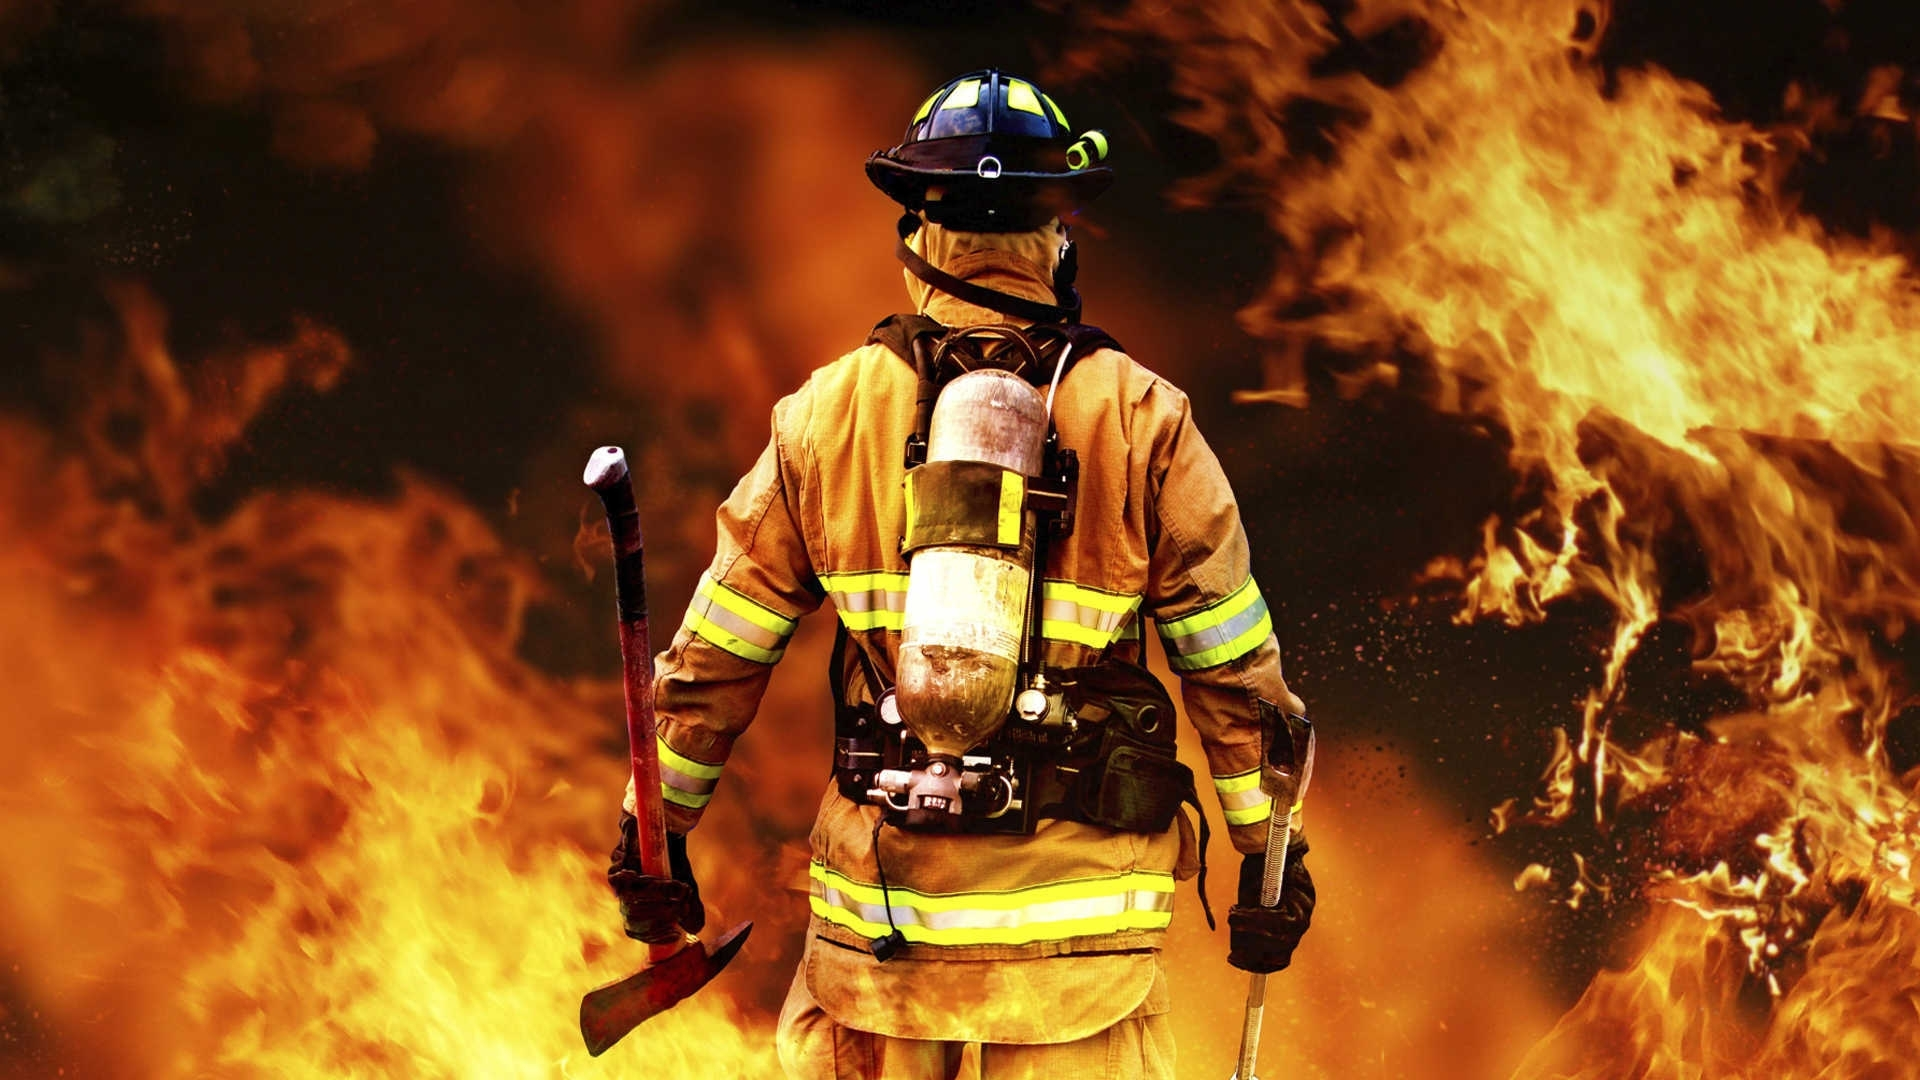 Title 46 Firefighter Wallpapers Top Ranked Pc Dimension 1920 X 1080 File Type JPG JPEG